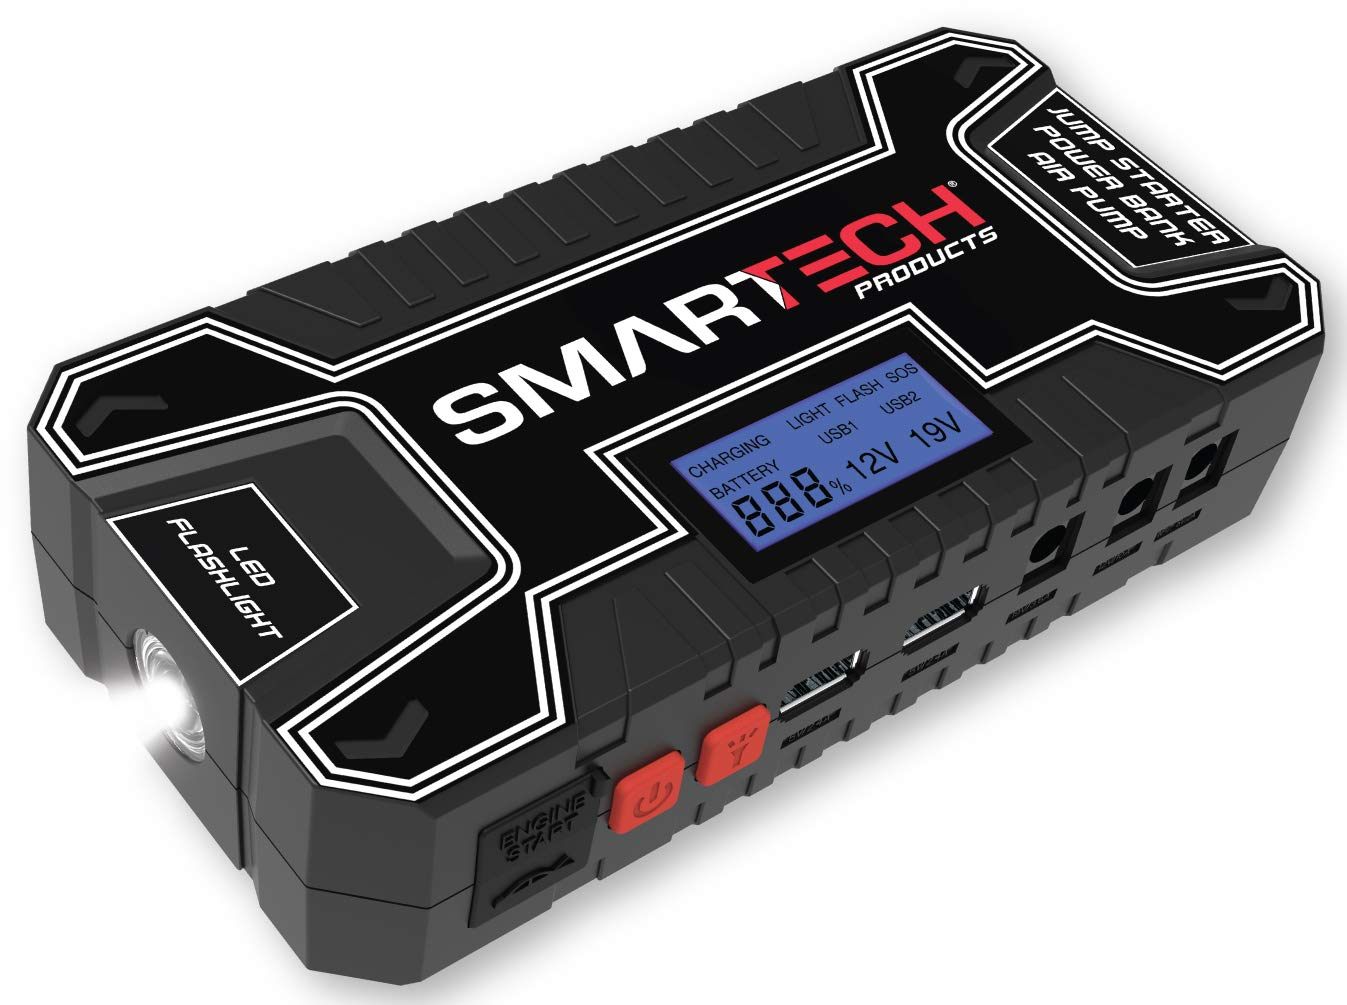 Smartech Power Kit Portable Jump Starter Power Bank Air Pump Tire inflator Air Compressor by Smartech Products (Image #1)